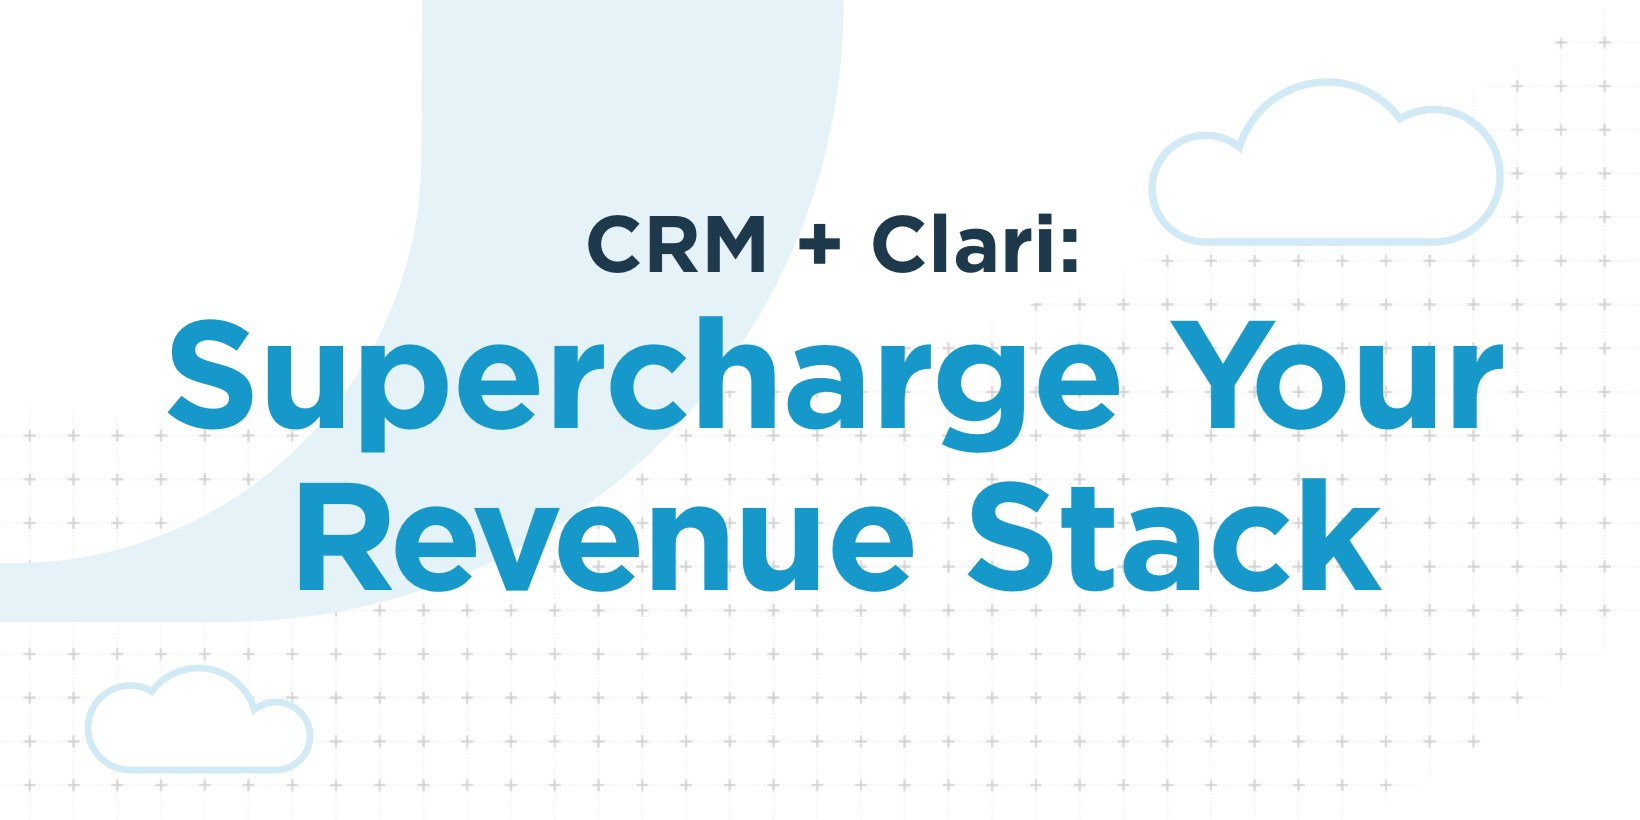 Supercharge your Revenue Stack with Clari (Infographic)